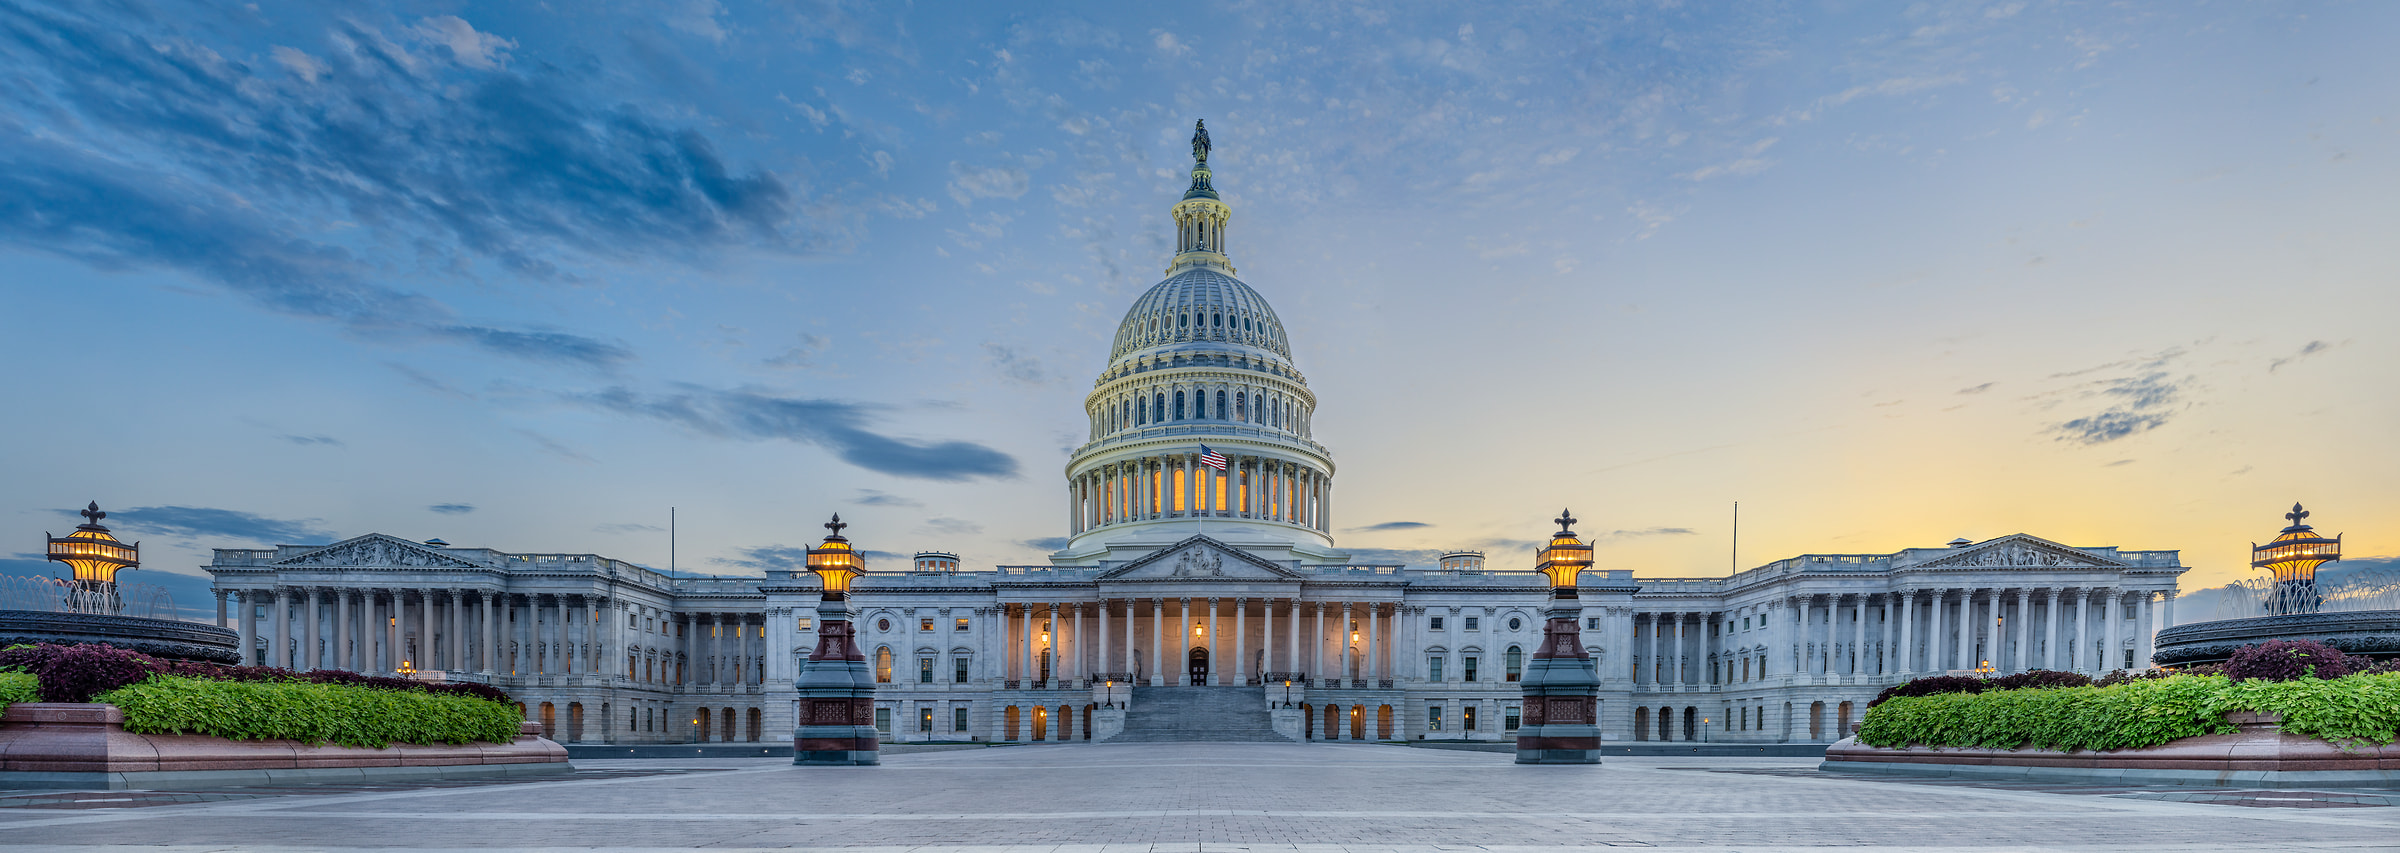 264 megapixels! A very high resolution, large-format VAST photo print of the U.S. Capitol Building at sunset and twilight; photograph created by Tim Lo Monaco in the United States Capitol, Washington, D.C., USA